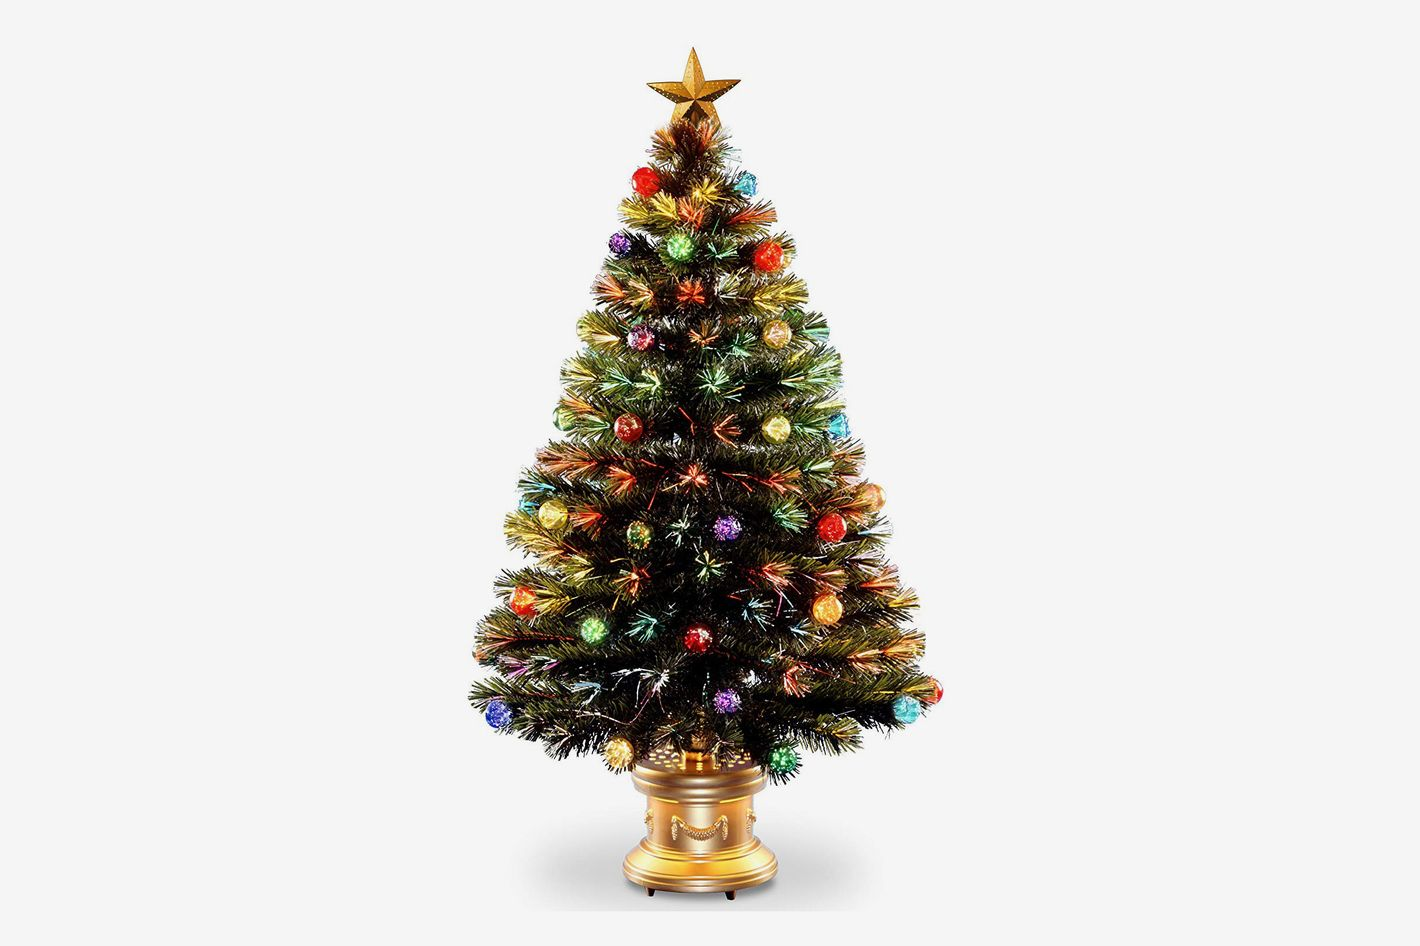 Best pre-lit 4-foot Christmas tree with ornaments